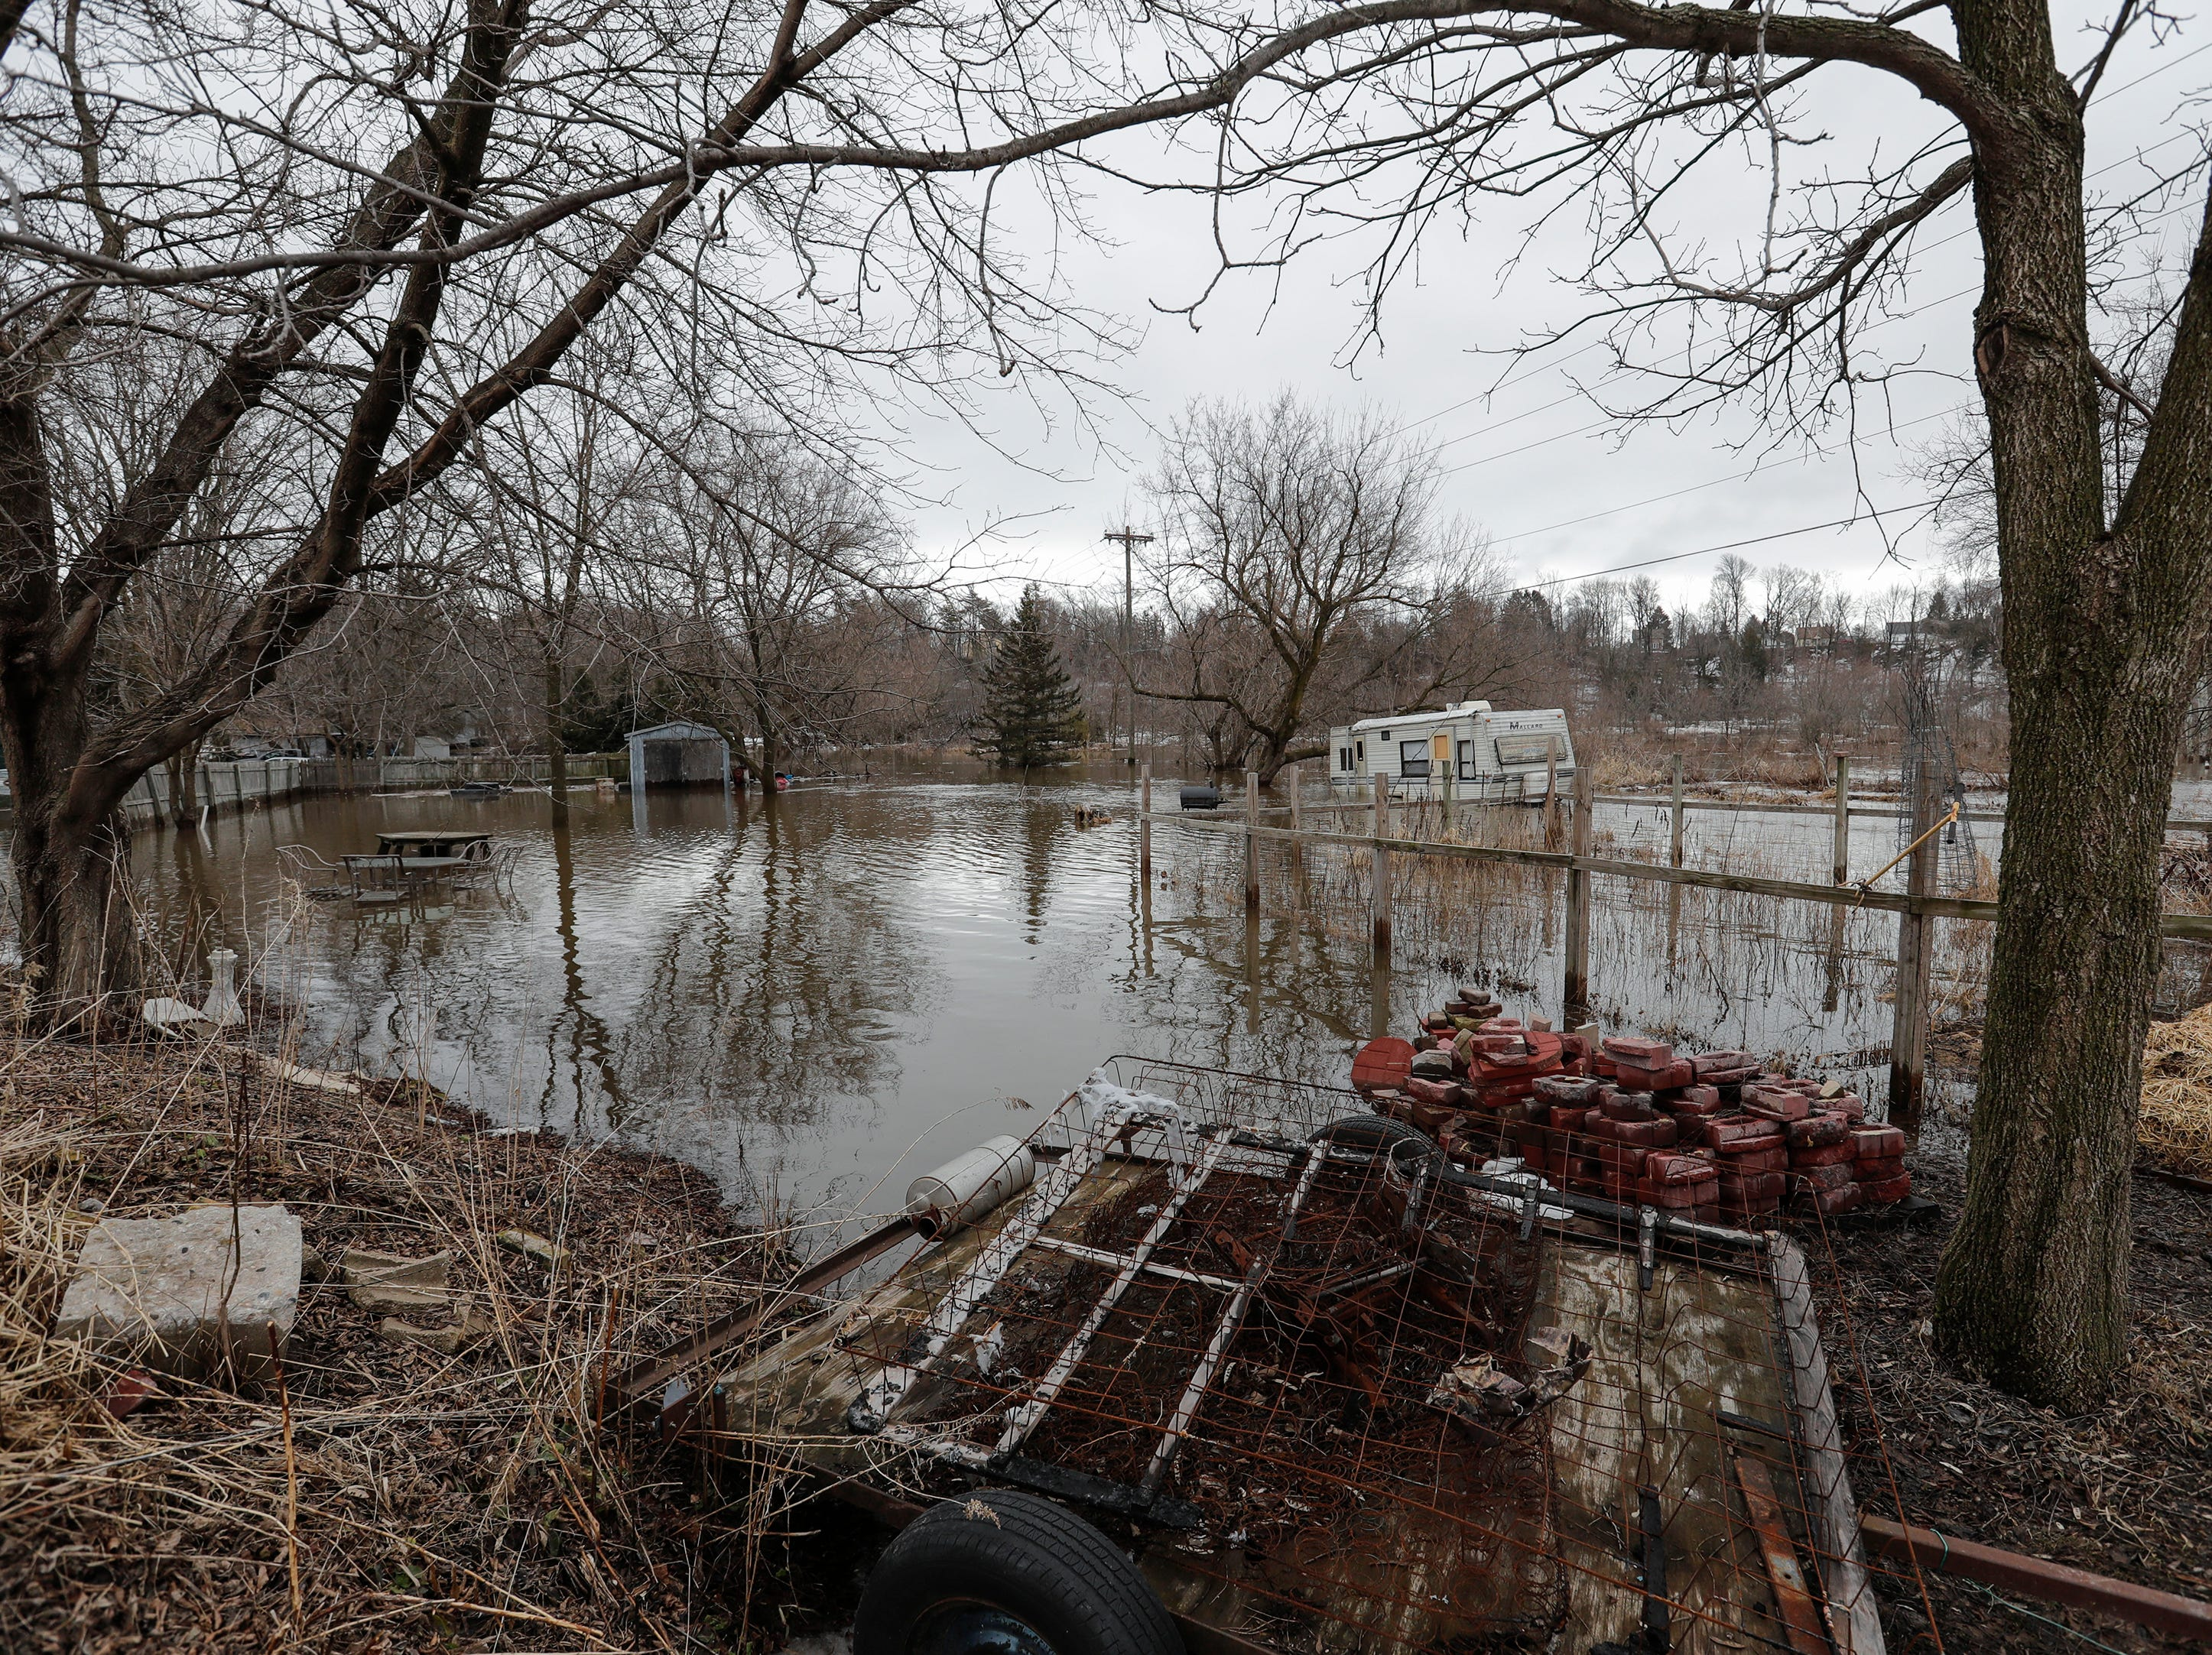 An ice jam on the Manitowoc River causes sever flooding on the block near 41st and Archer Thursday, March 21, 2019, in Manitowoc, Wis. Joshua Clark/USA TODAY NETWORK-Wisconsin